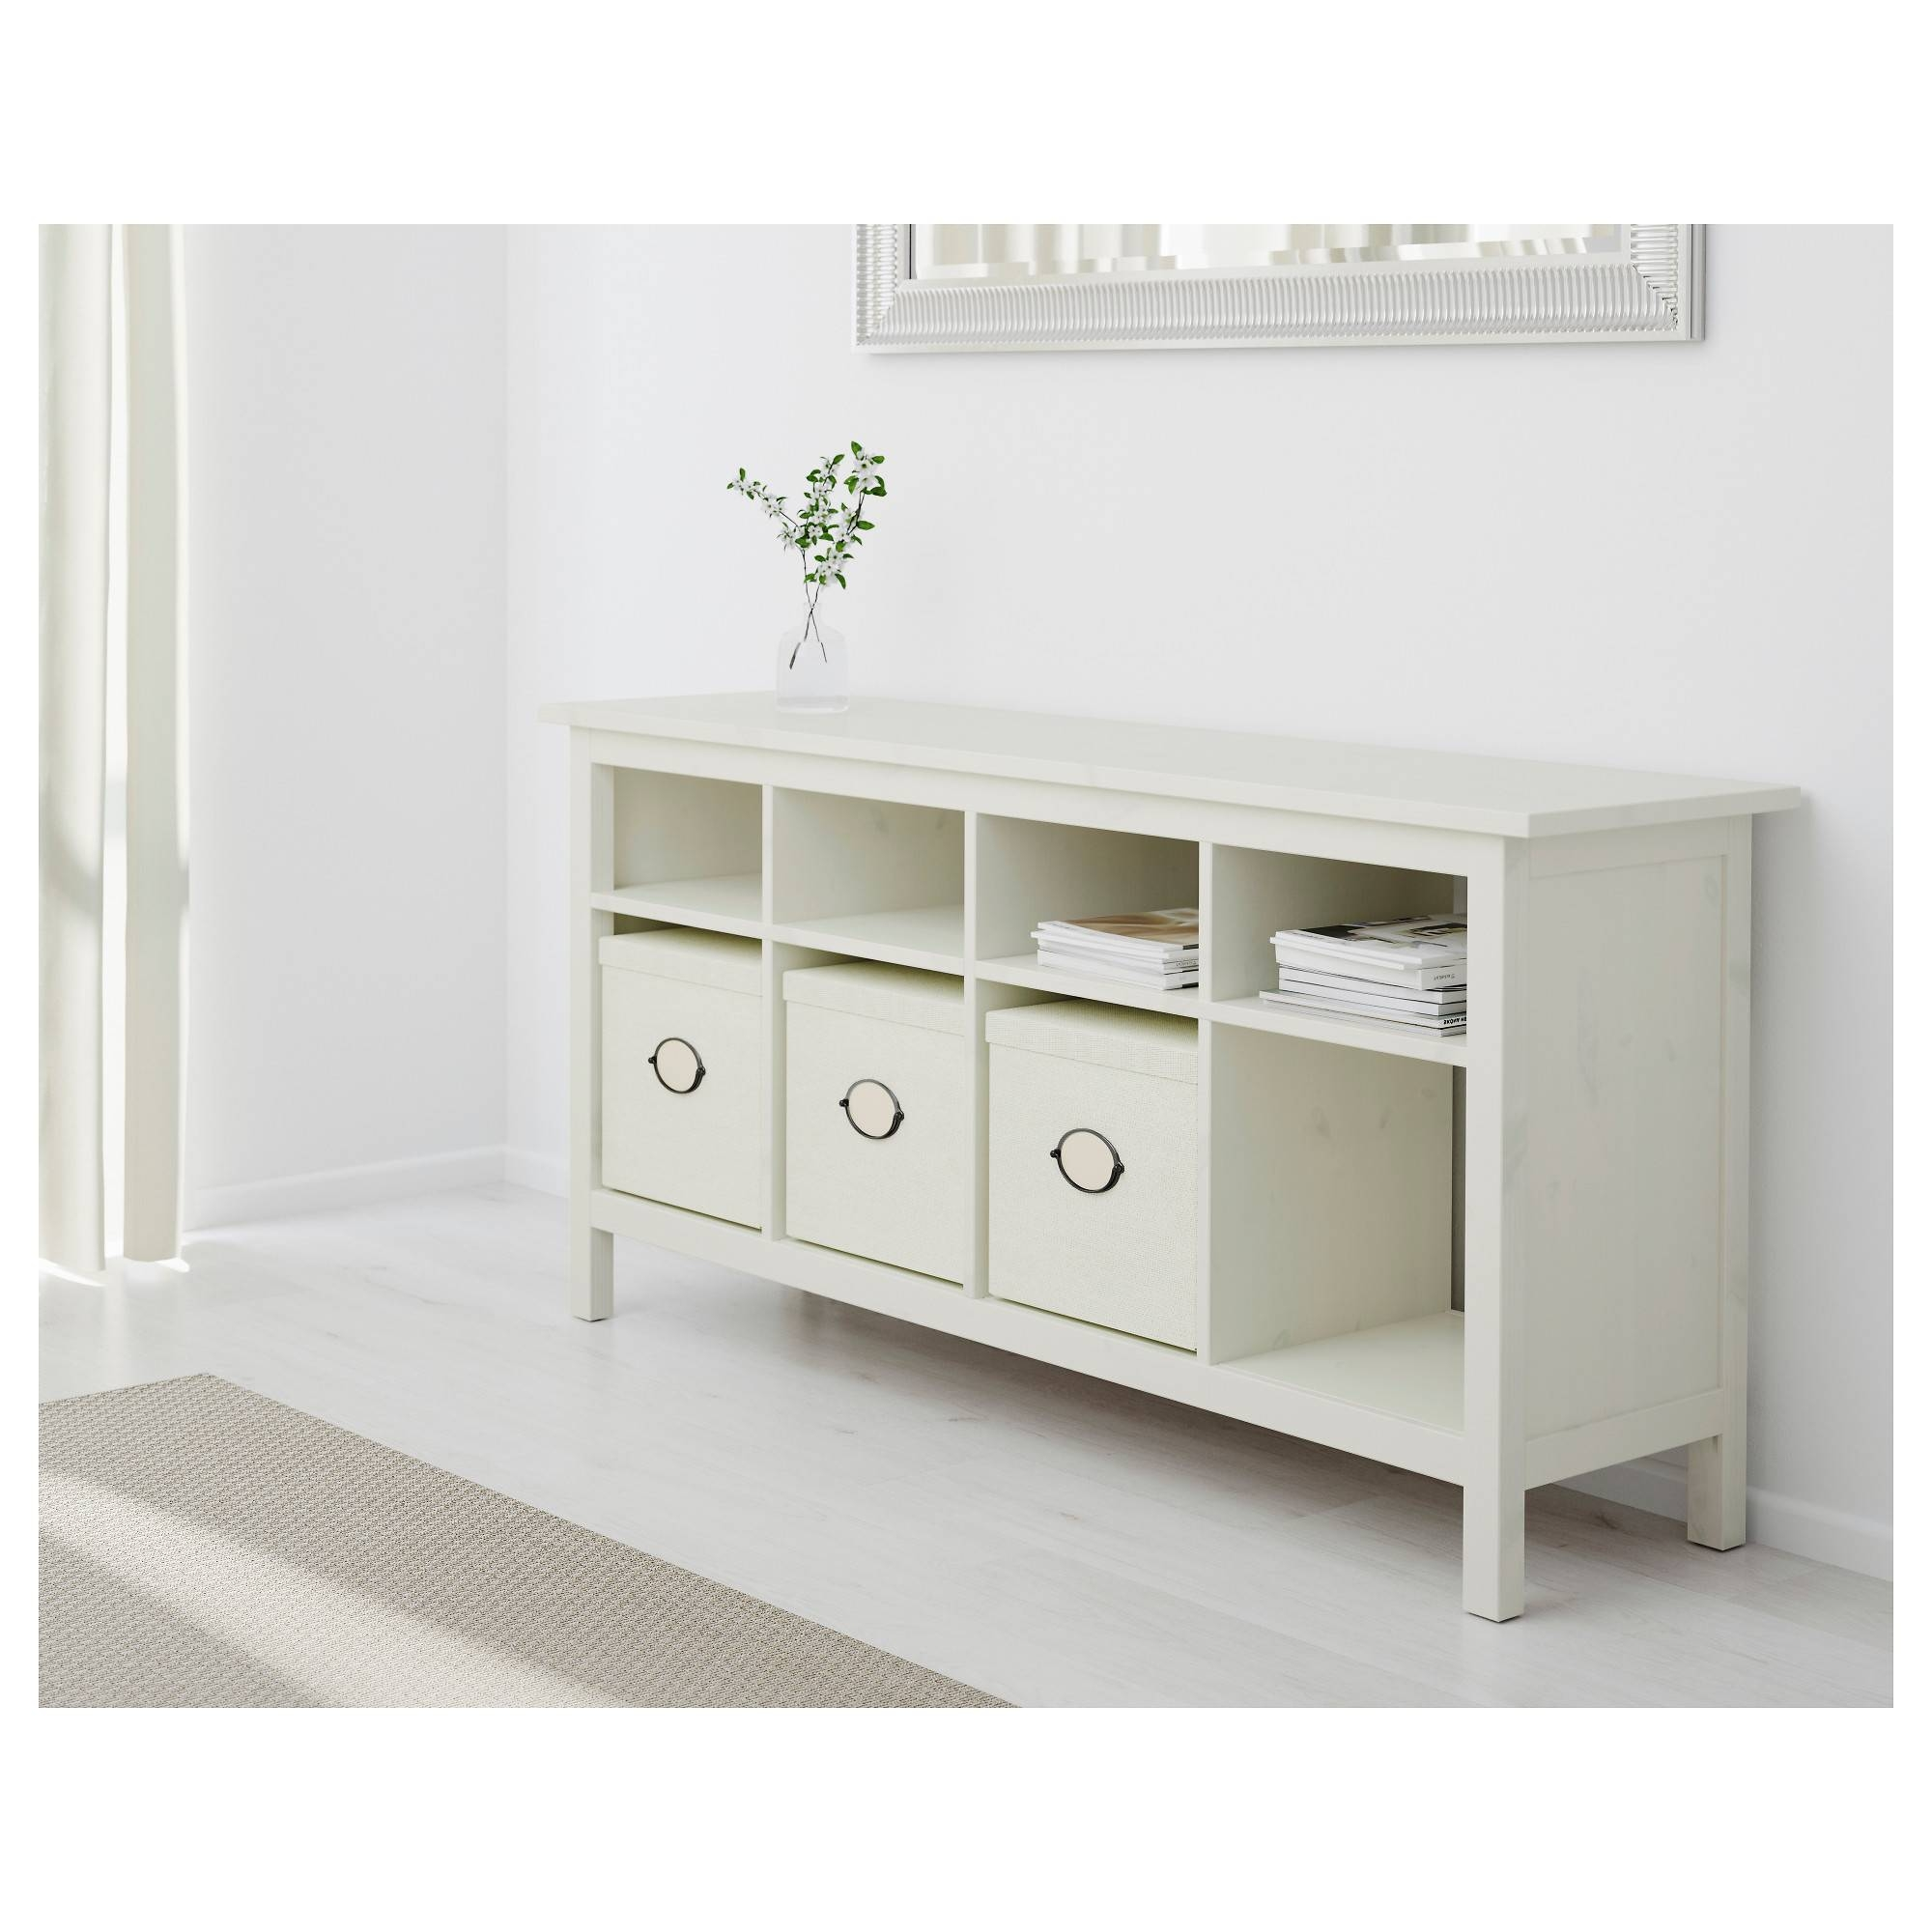 Hemnes Console Table - Light Brown - Ikea with regard to Canada Ikea Sideboards (Image 1 of 15)